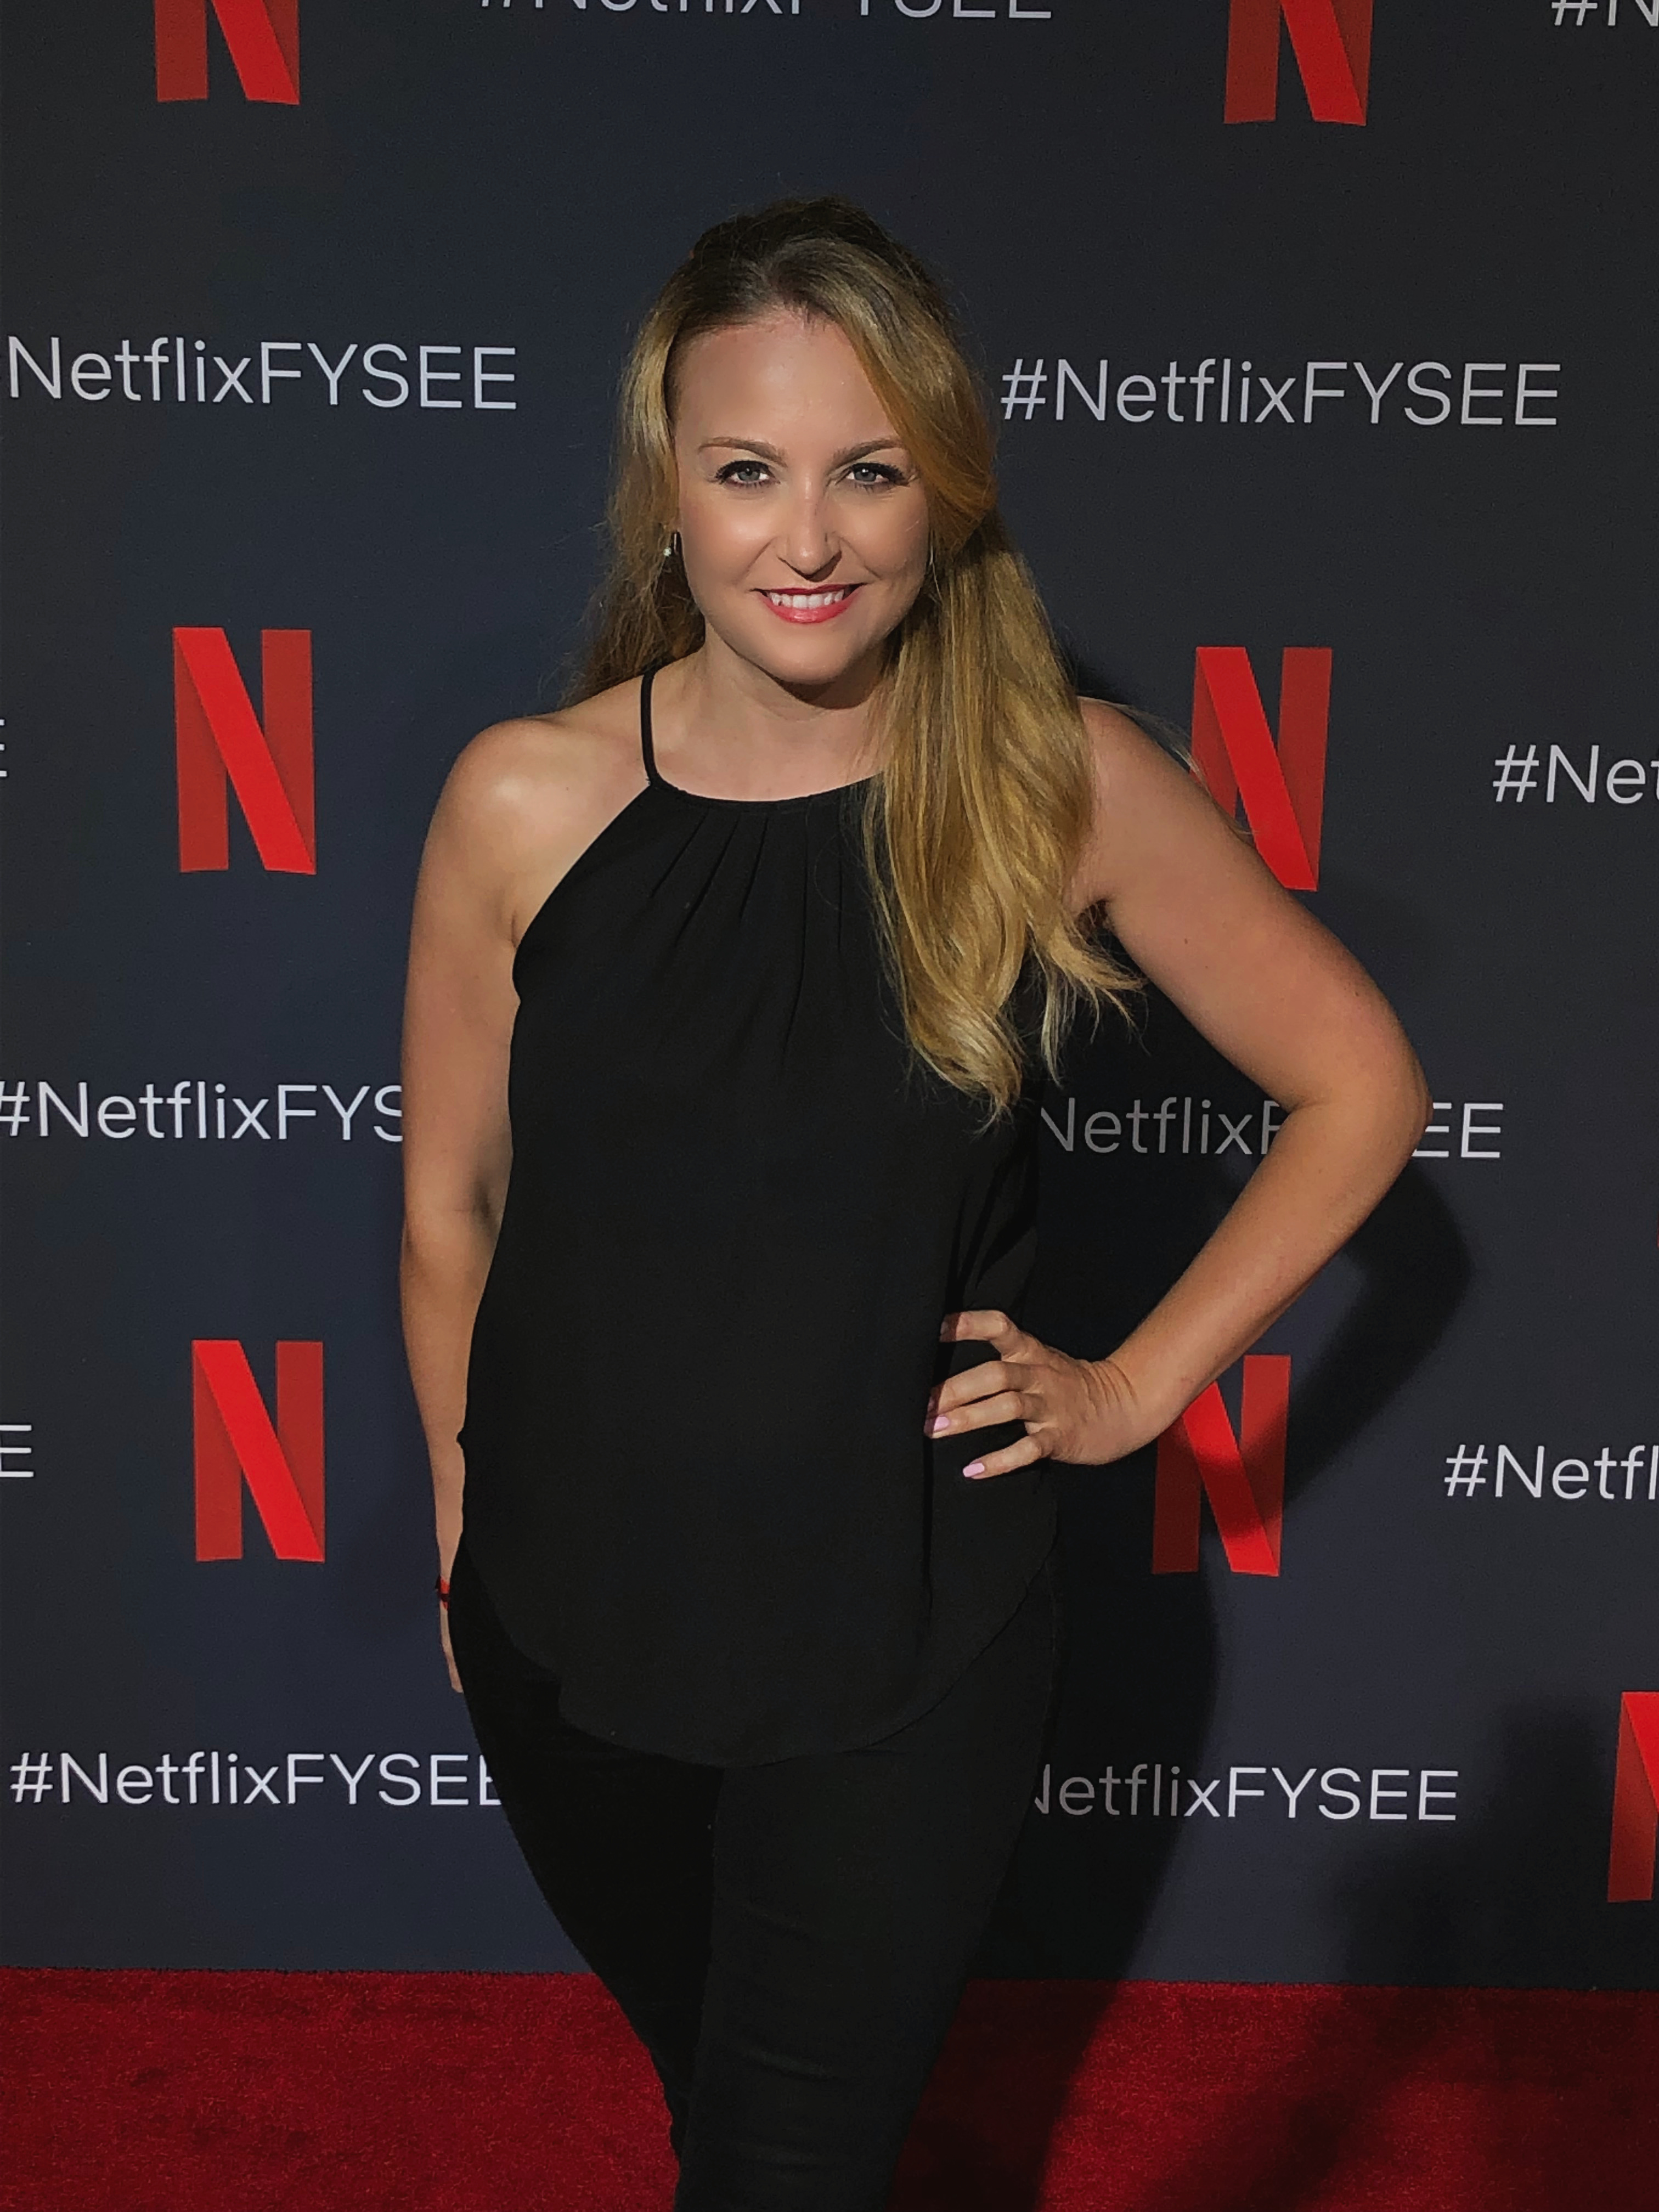 Janine attends the red carpet for Netflix FYC event in 2019, in Hollywood